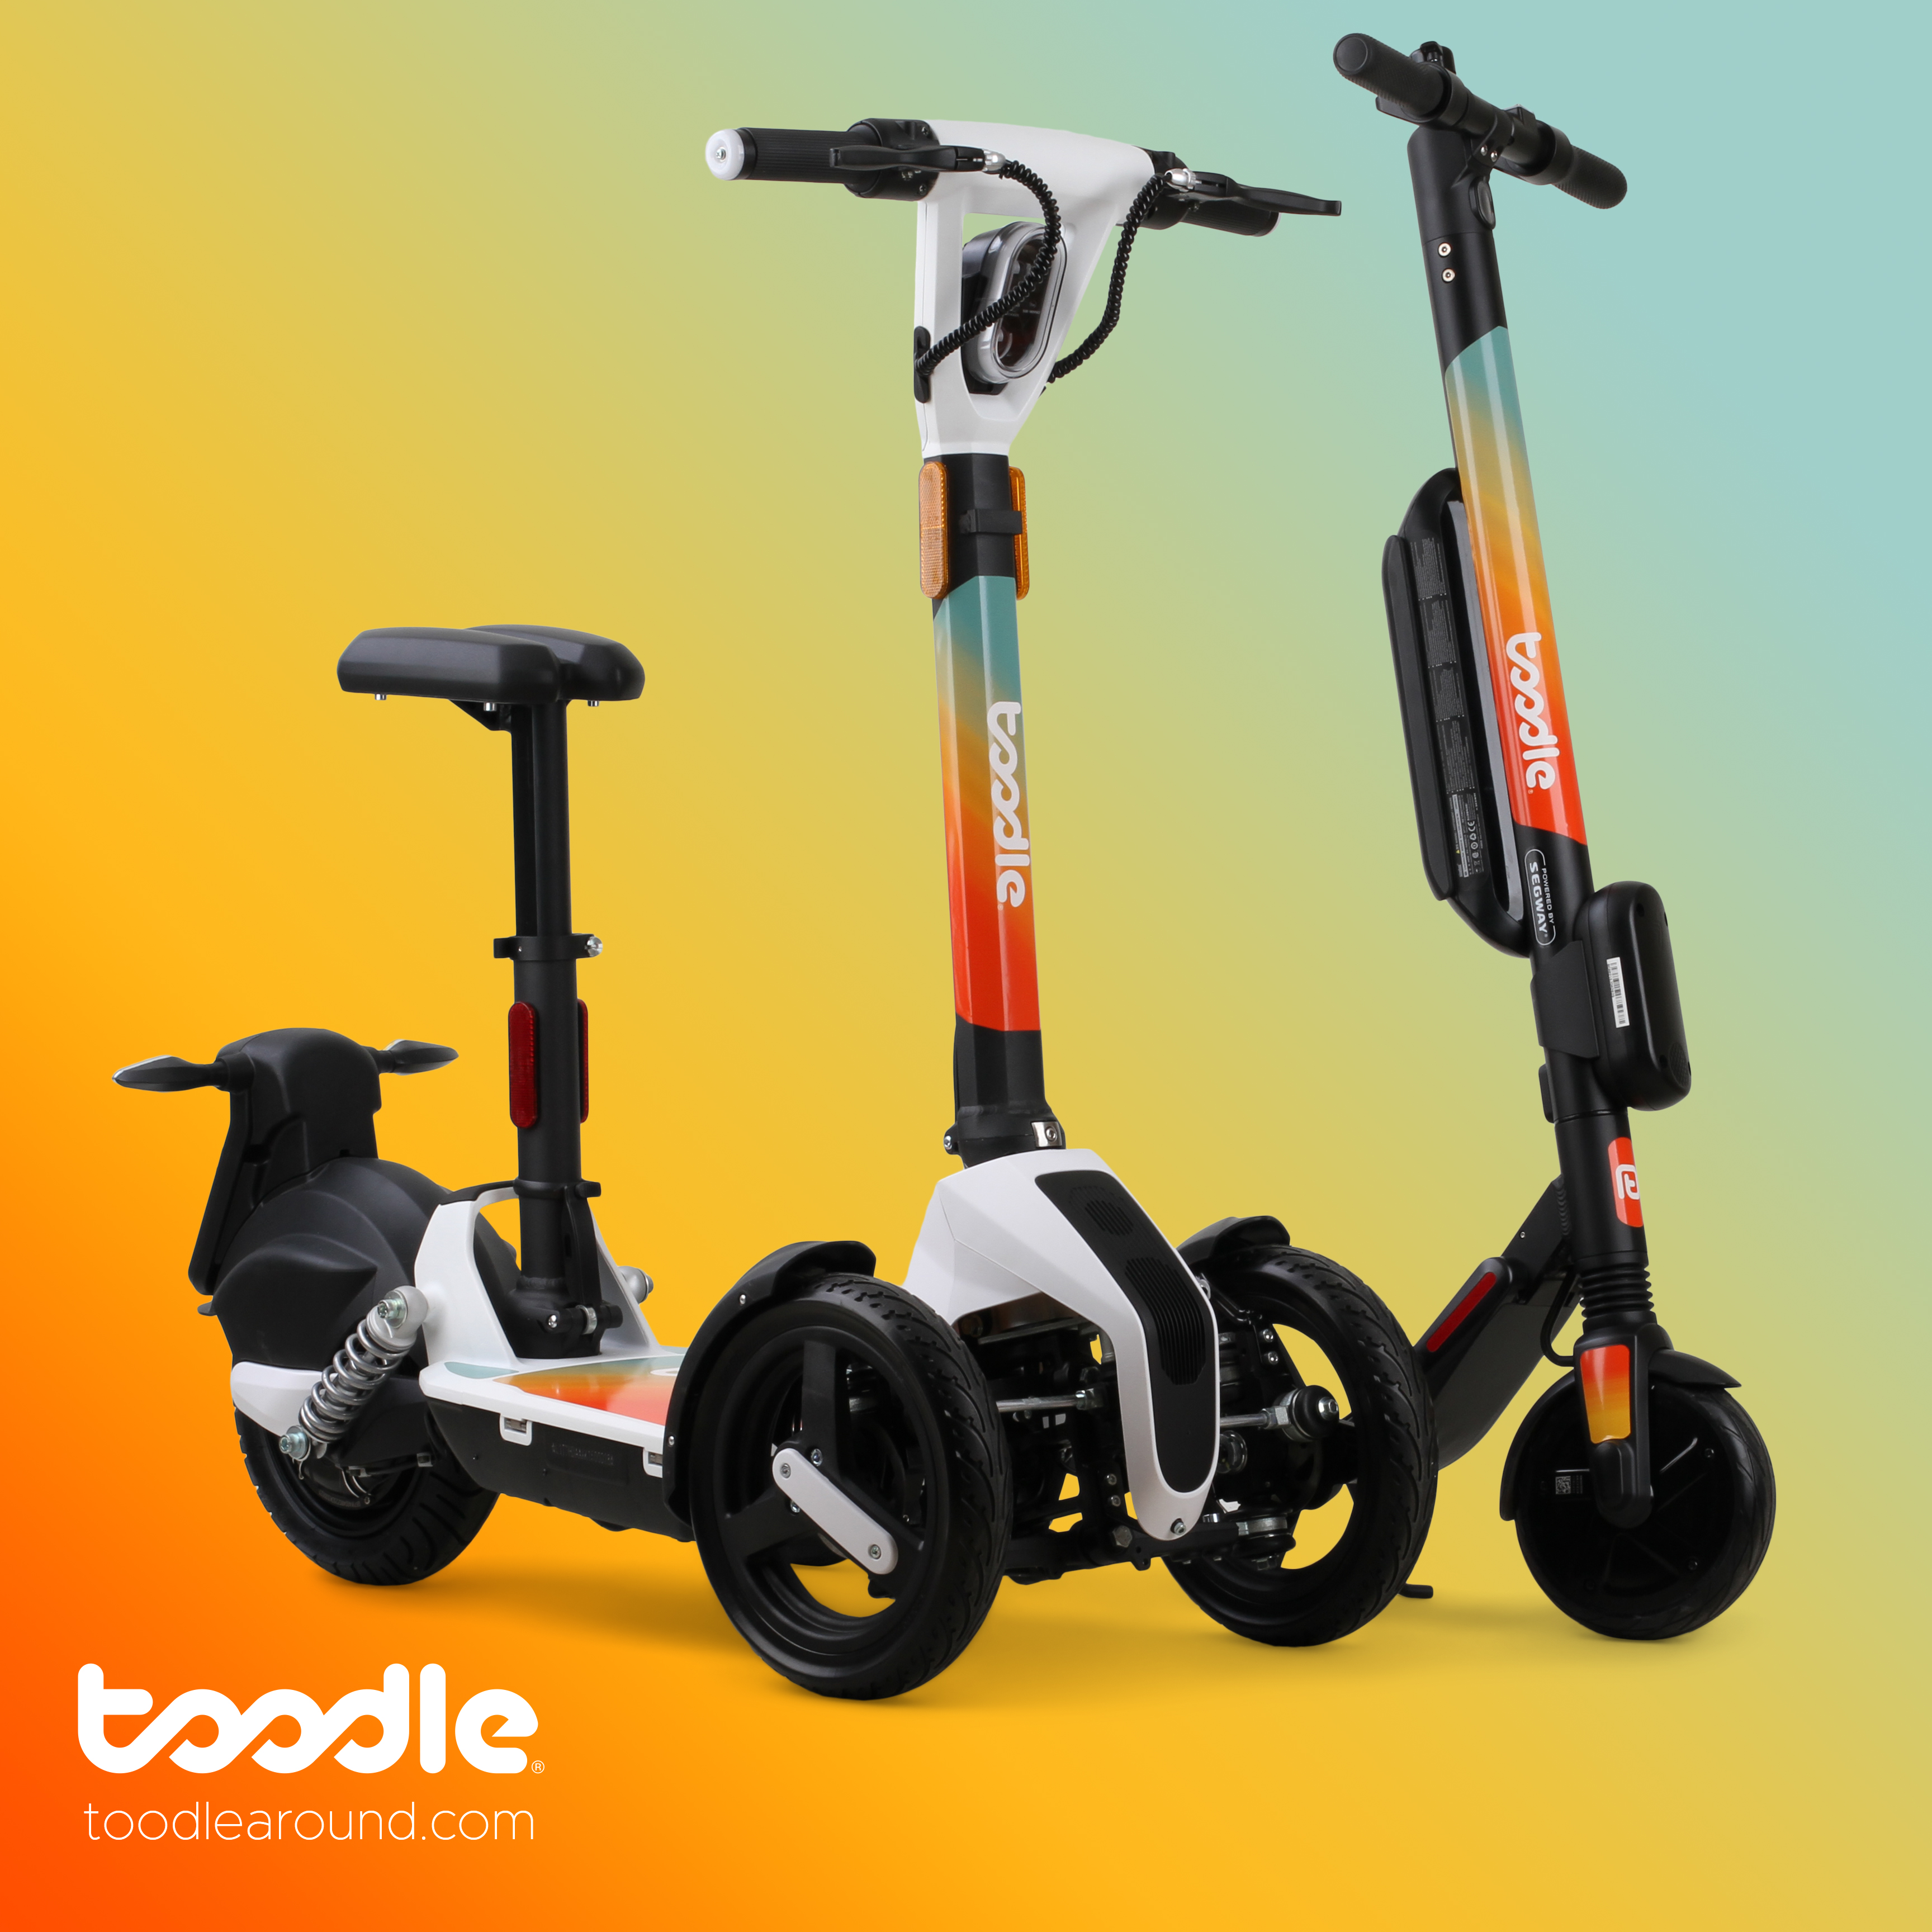 Toodle electric sharing scooter and trike